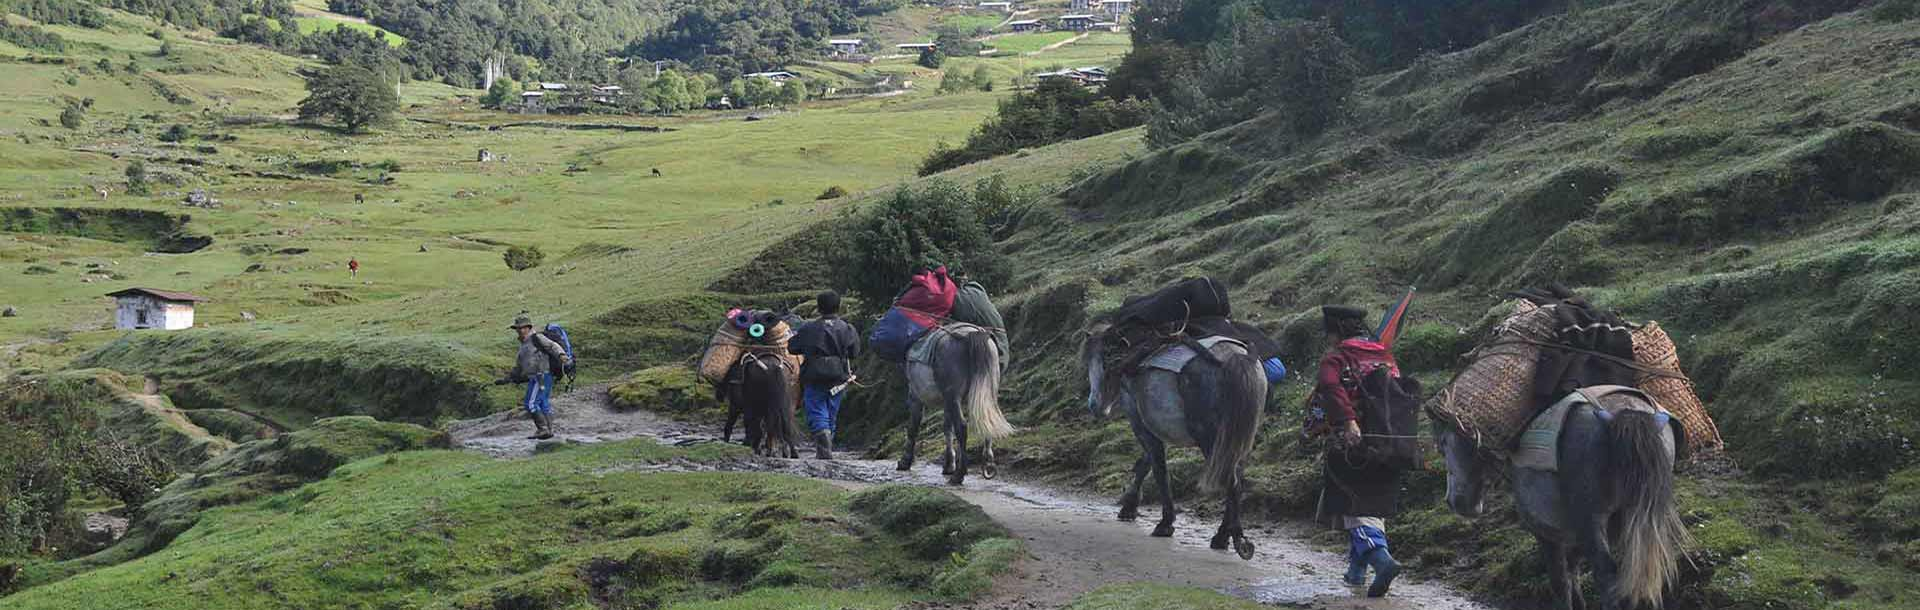 Pack horses carrying trekking supplies and equipment